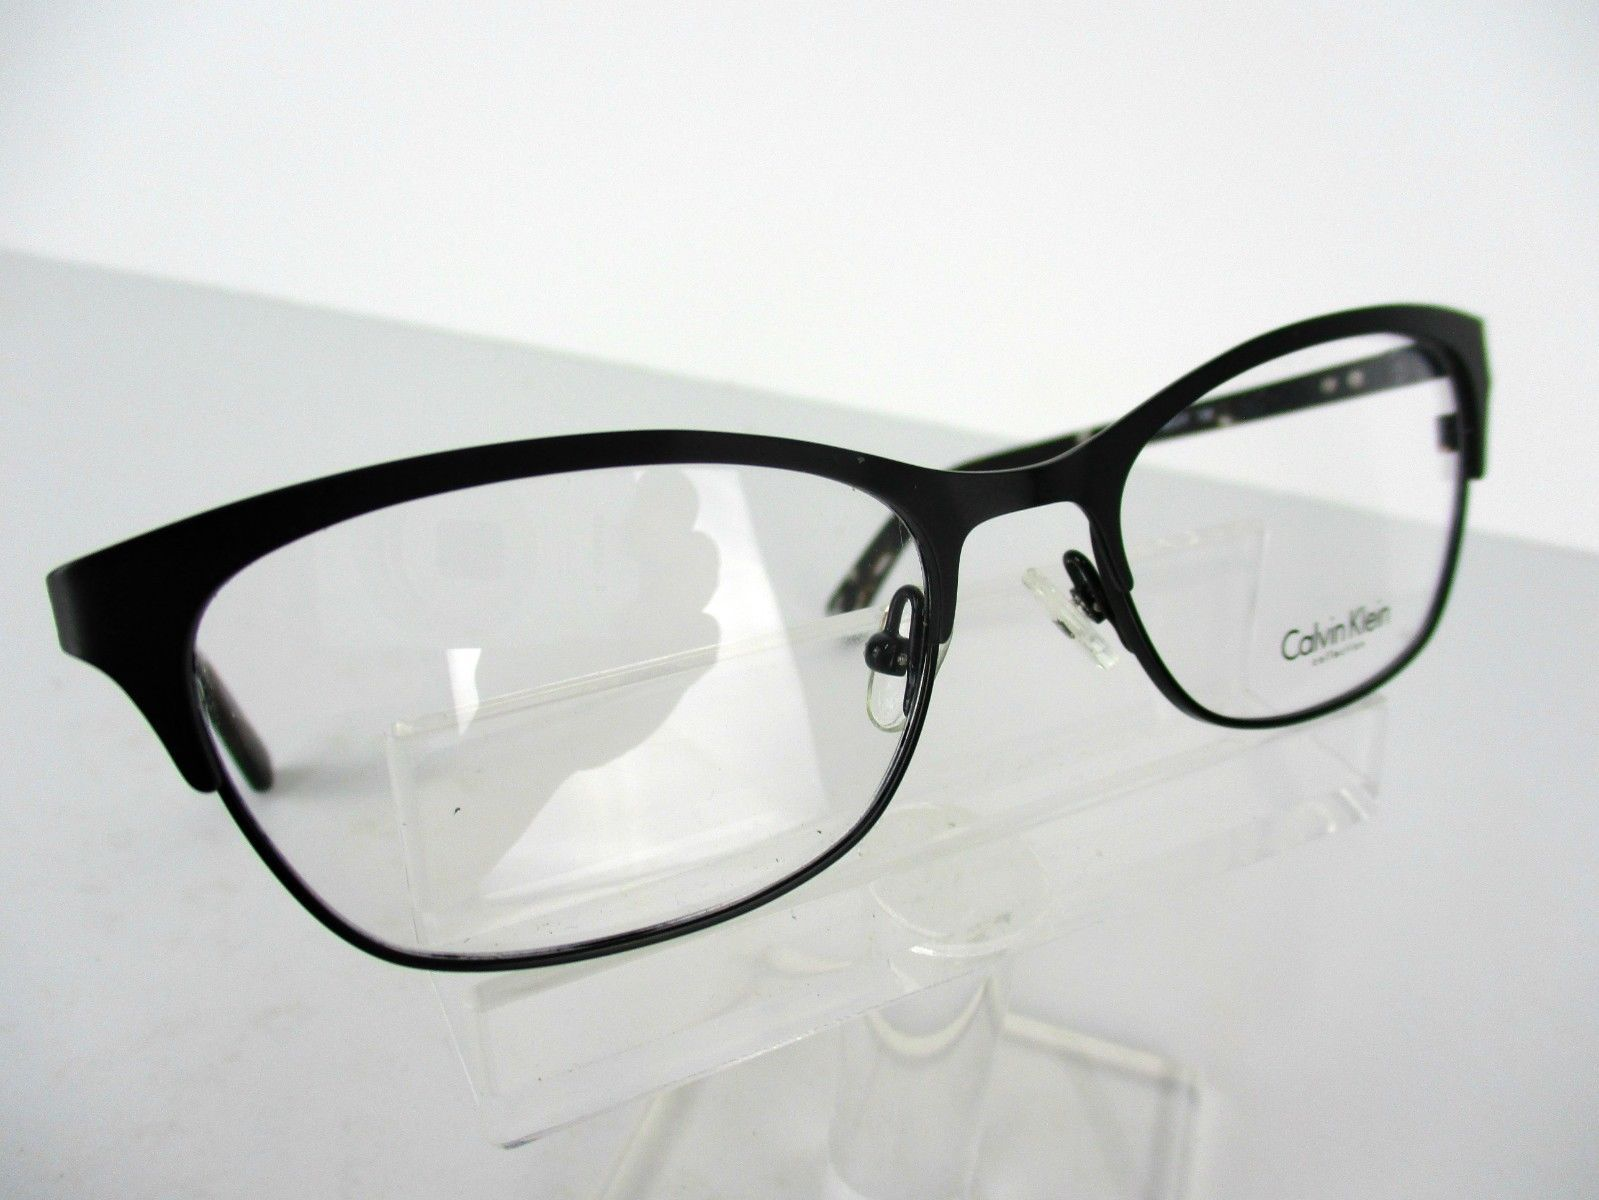 065fe2f7901 Calvin Klein Ck 7395 (001) Black 52 X 17 135 and 50 similar items